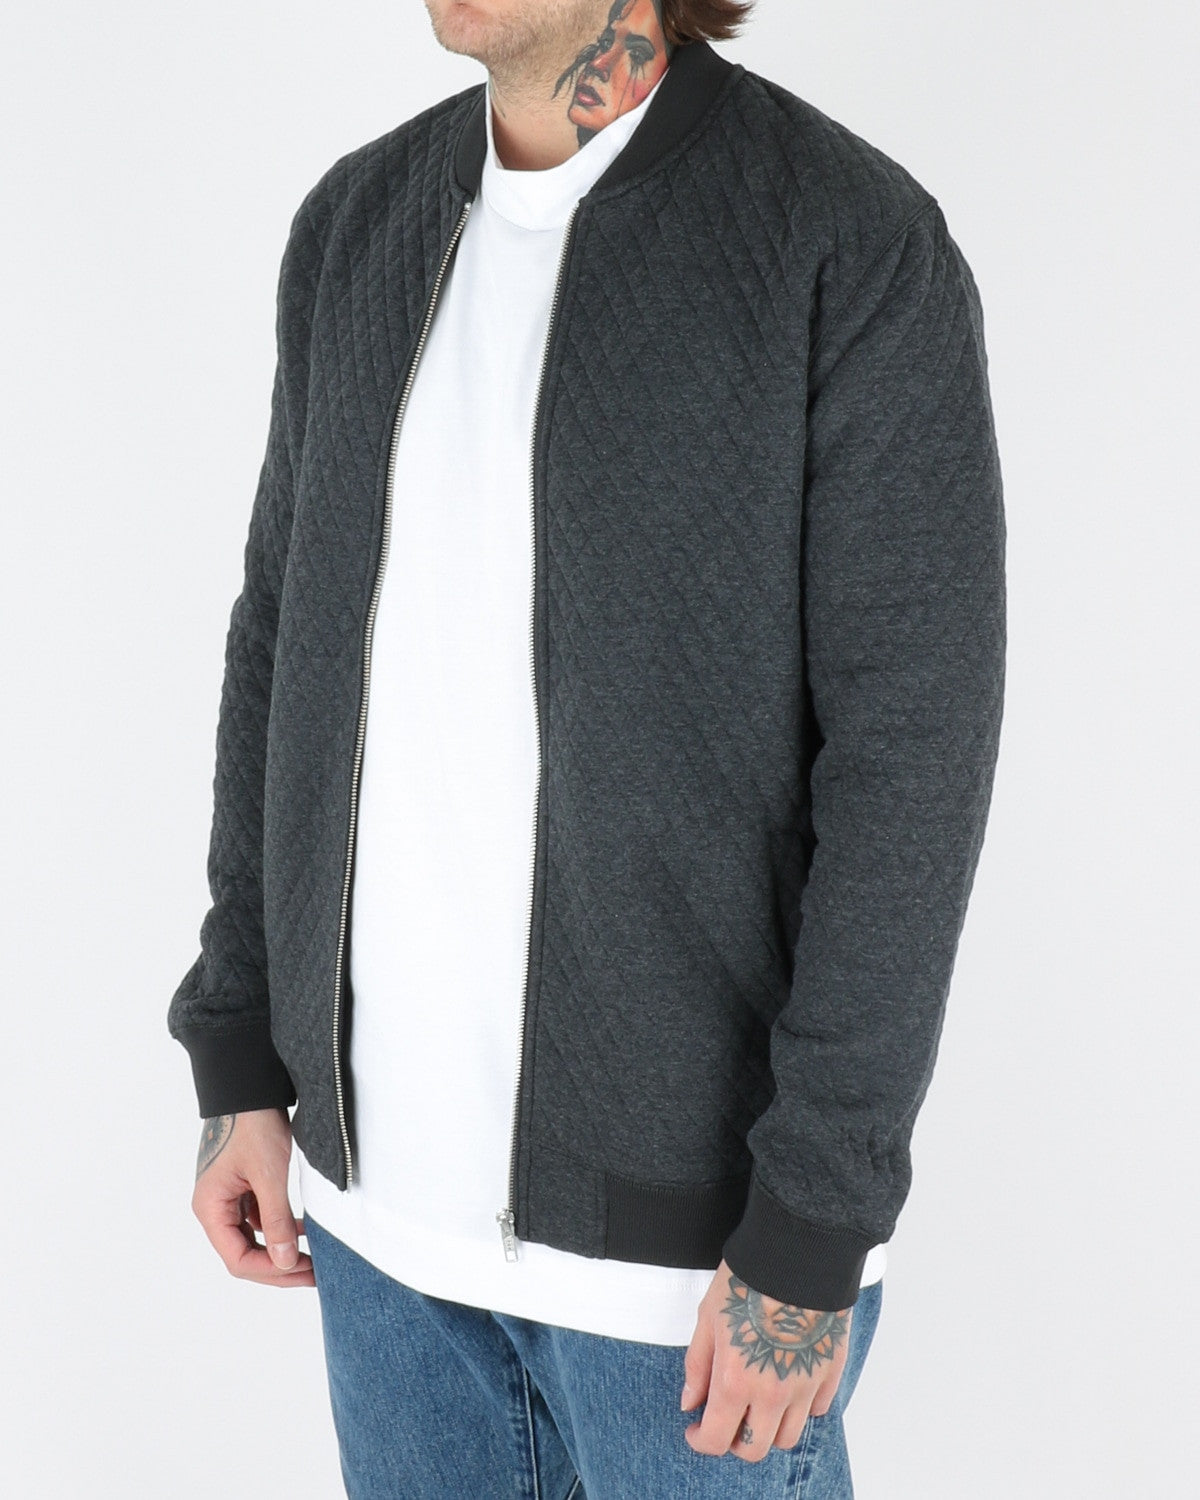 wac we are copenhagen_lens zip sweatshirt_dark grey melange_view_2_3